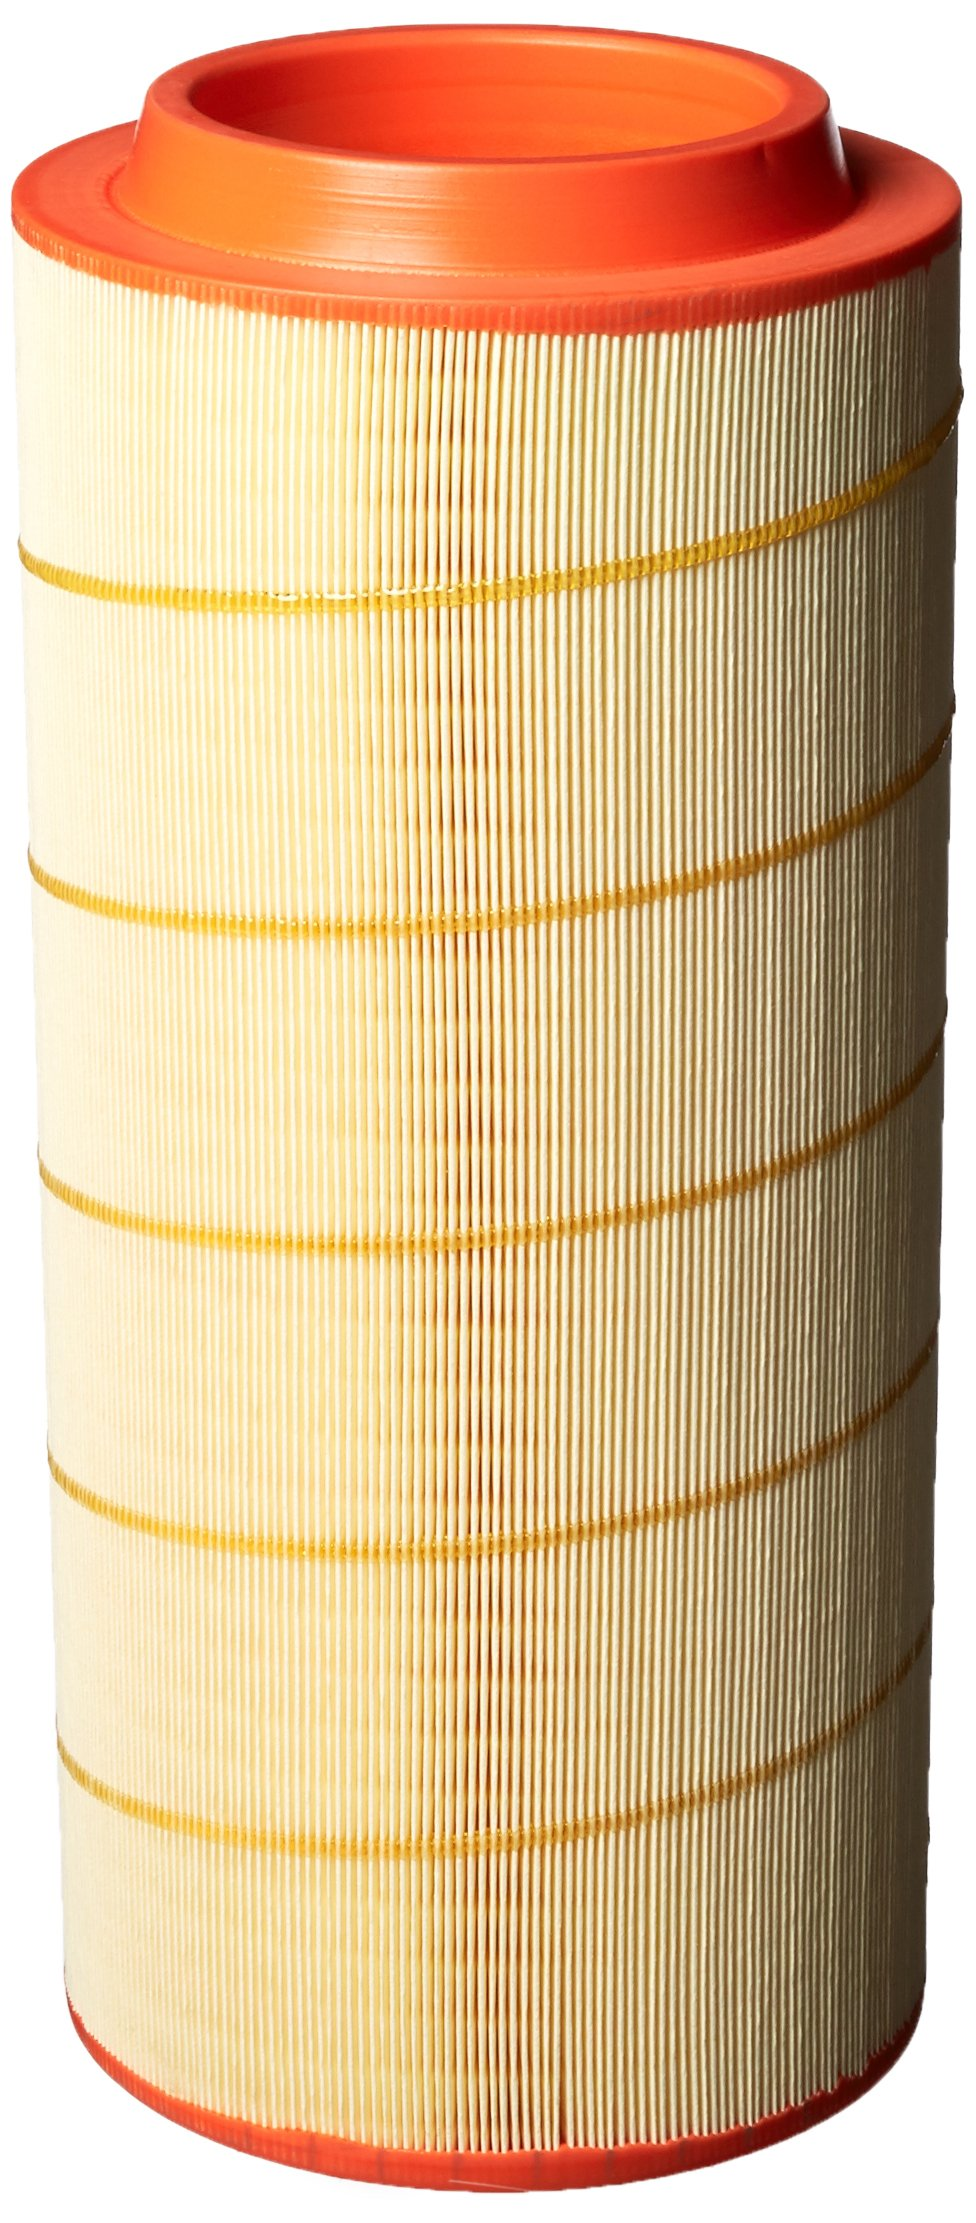 WIX Filters - 49711 Heavy Duty Radial Seal Outer Air, Pack of 1